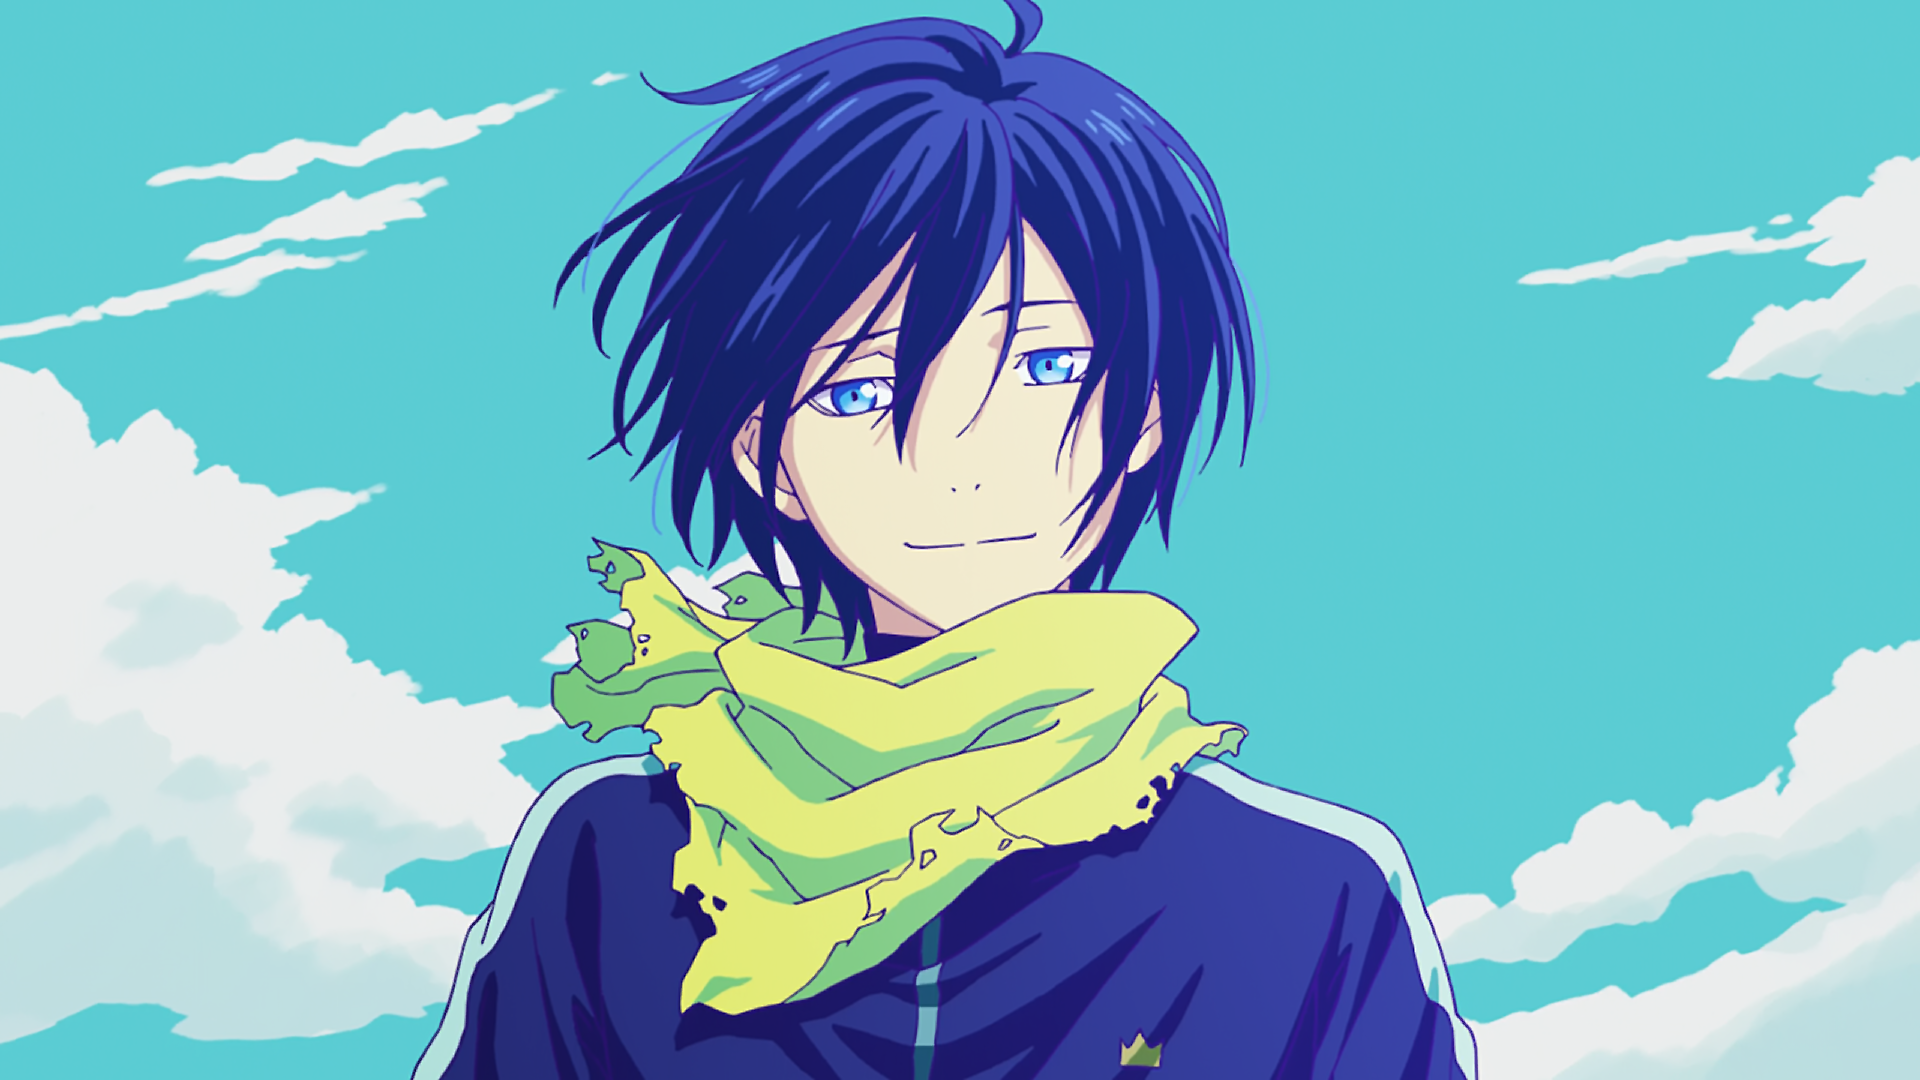 imagen noragami wallpaper by - photo #10